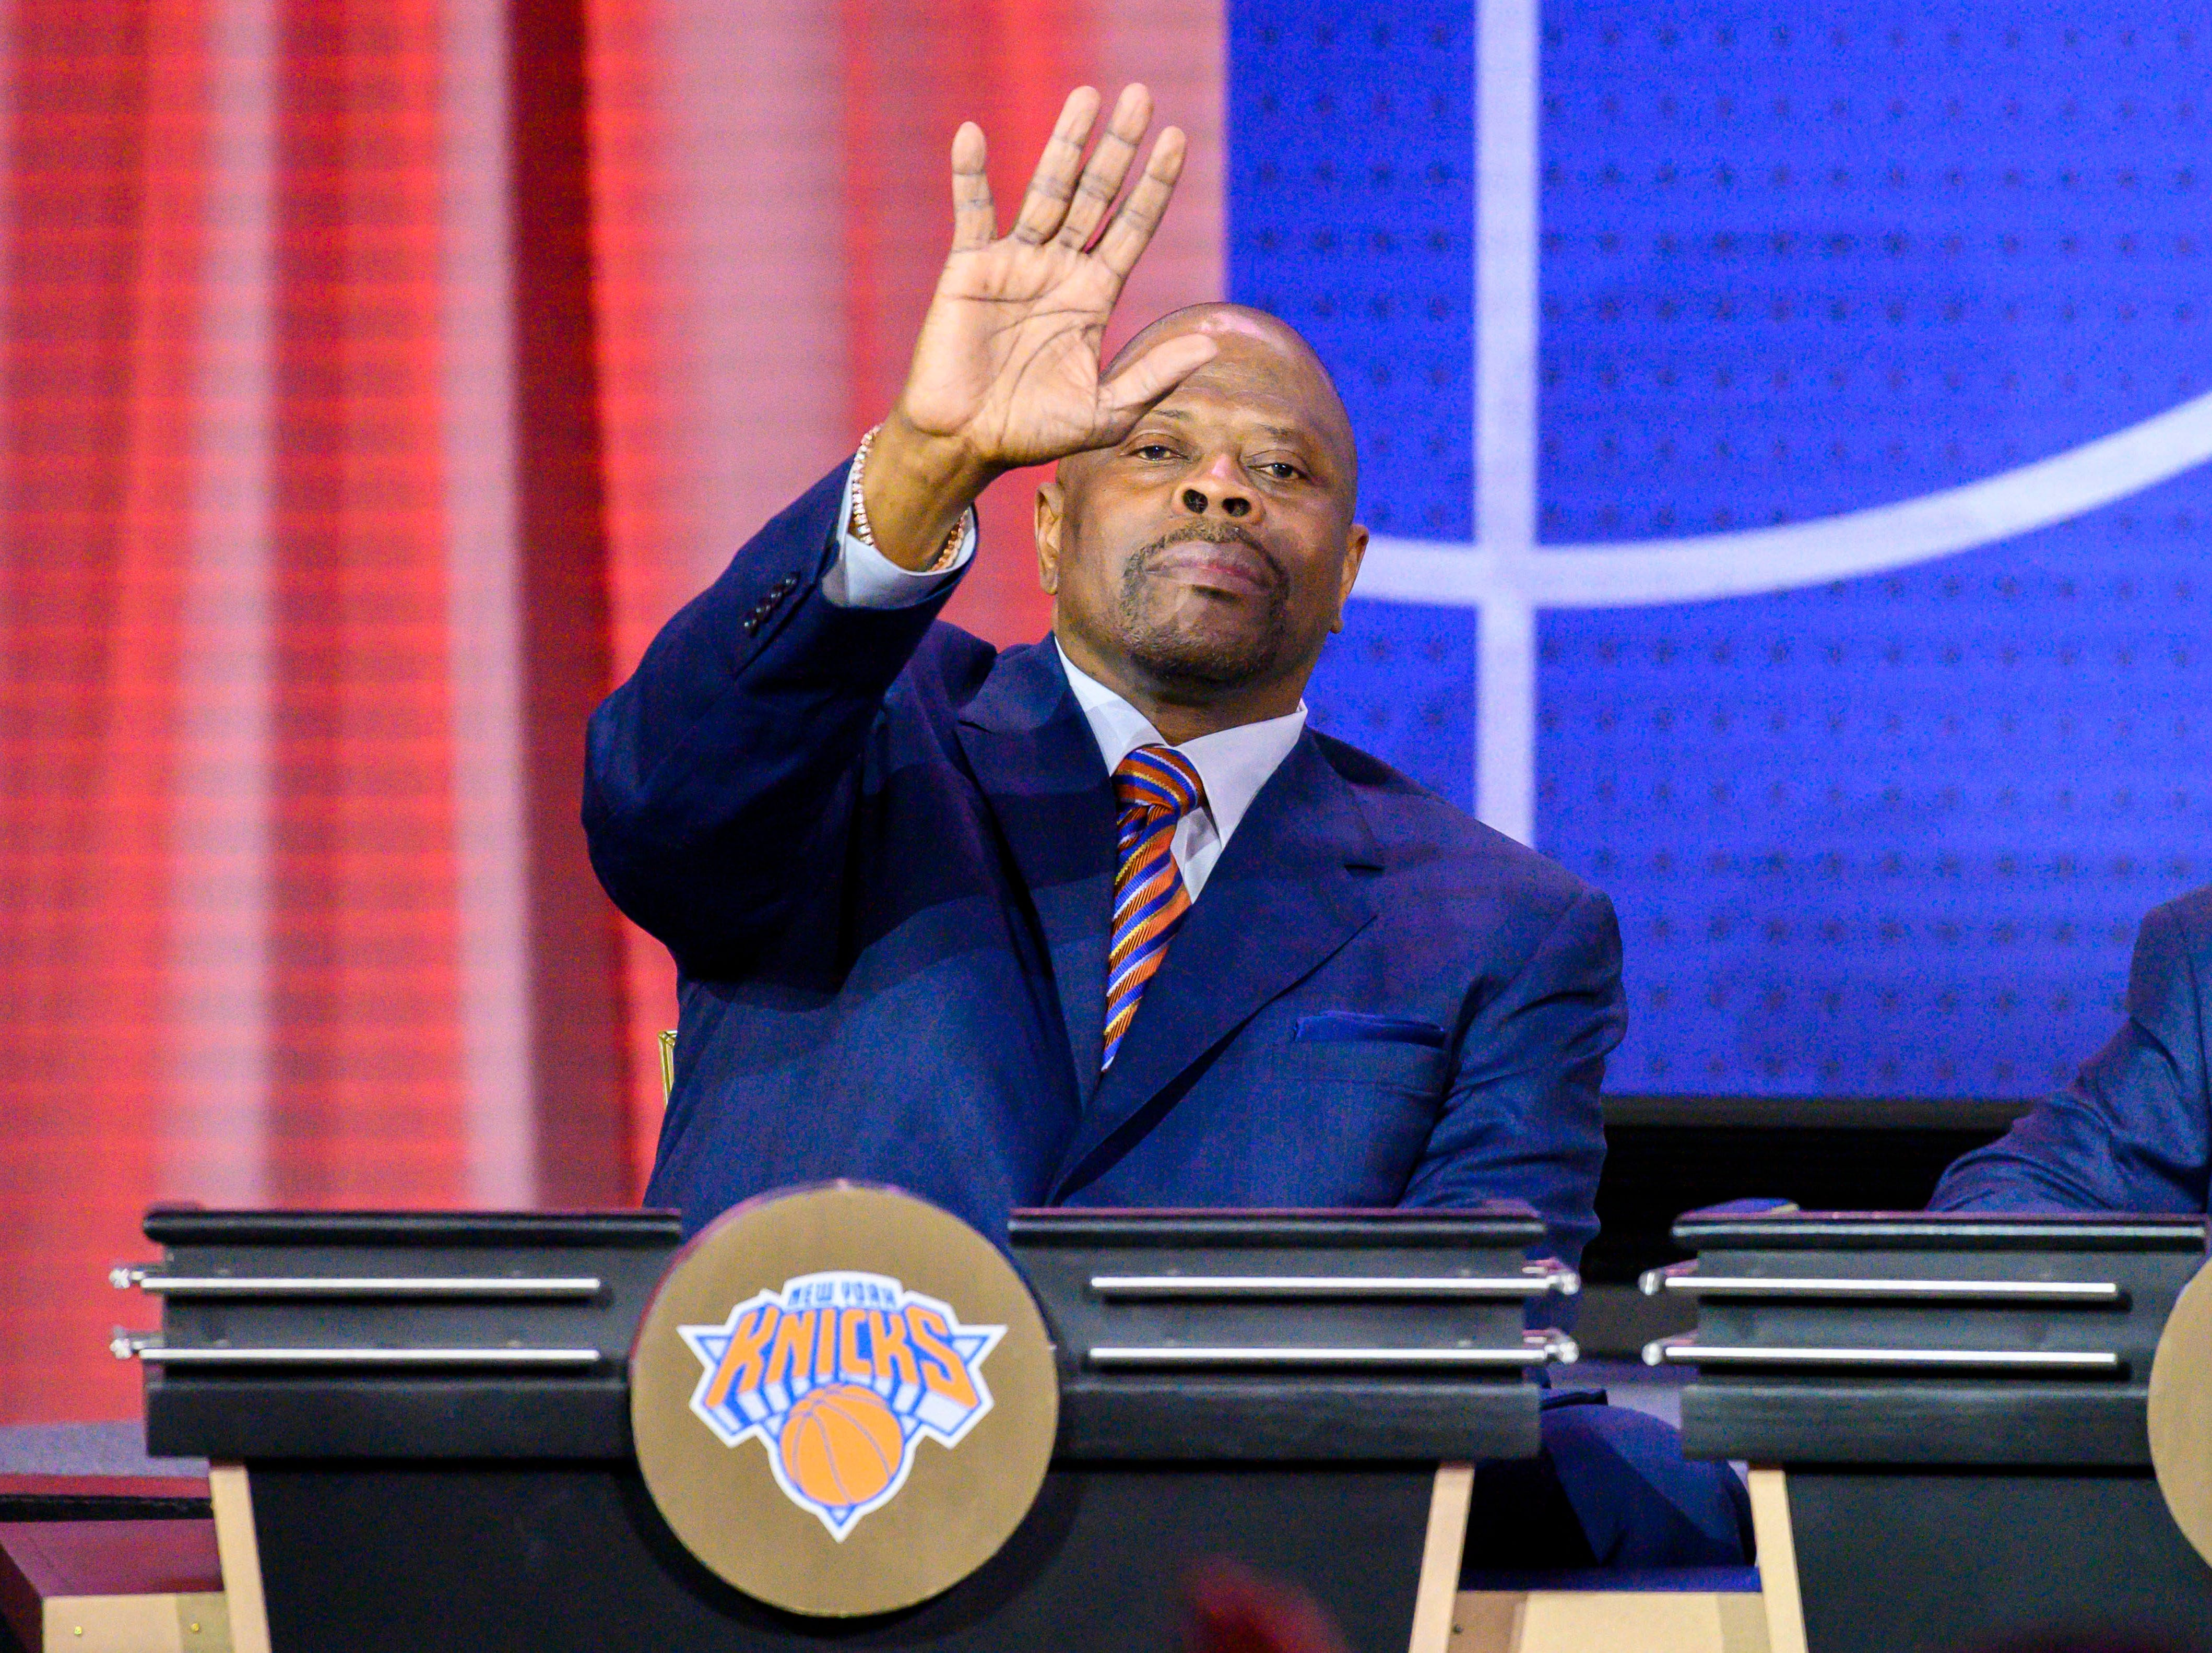 May 14, 2019; Chicago, IL, USA; New York Knicks former player Patrick Ewing waves during the 2019 NBA Draft Lottery at the Hilton Chicago. Mandatory Credit: Patrick Gorski-USA TODAY Sports